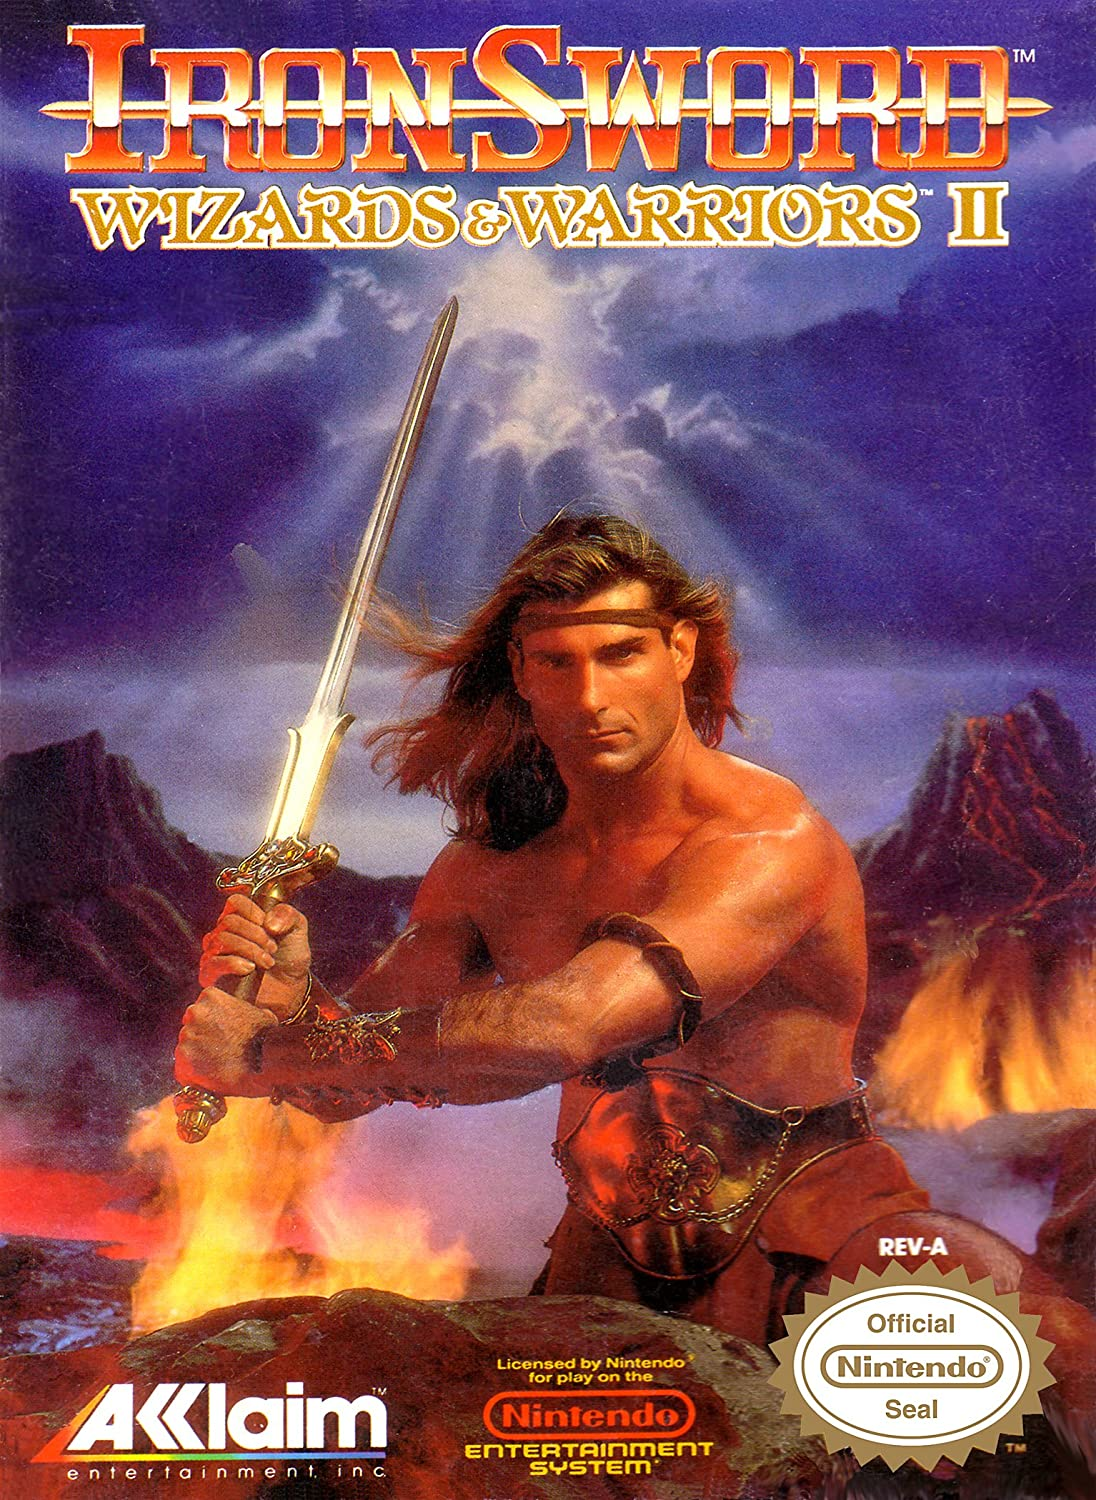 Ironsword Wizards & Warriors II facts and statistics